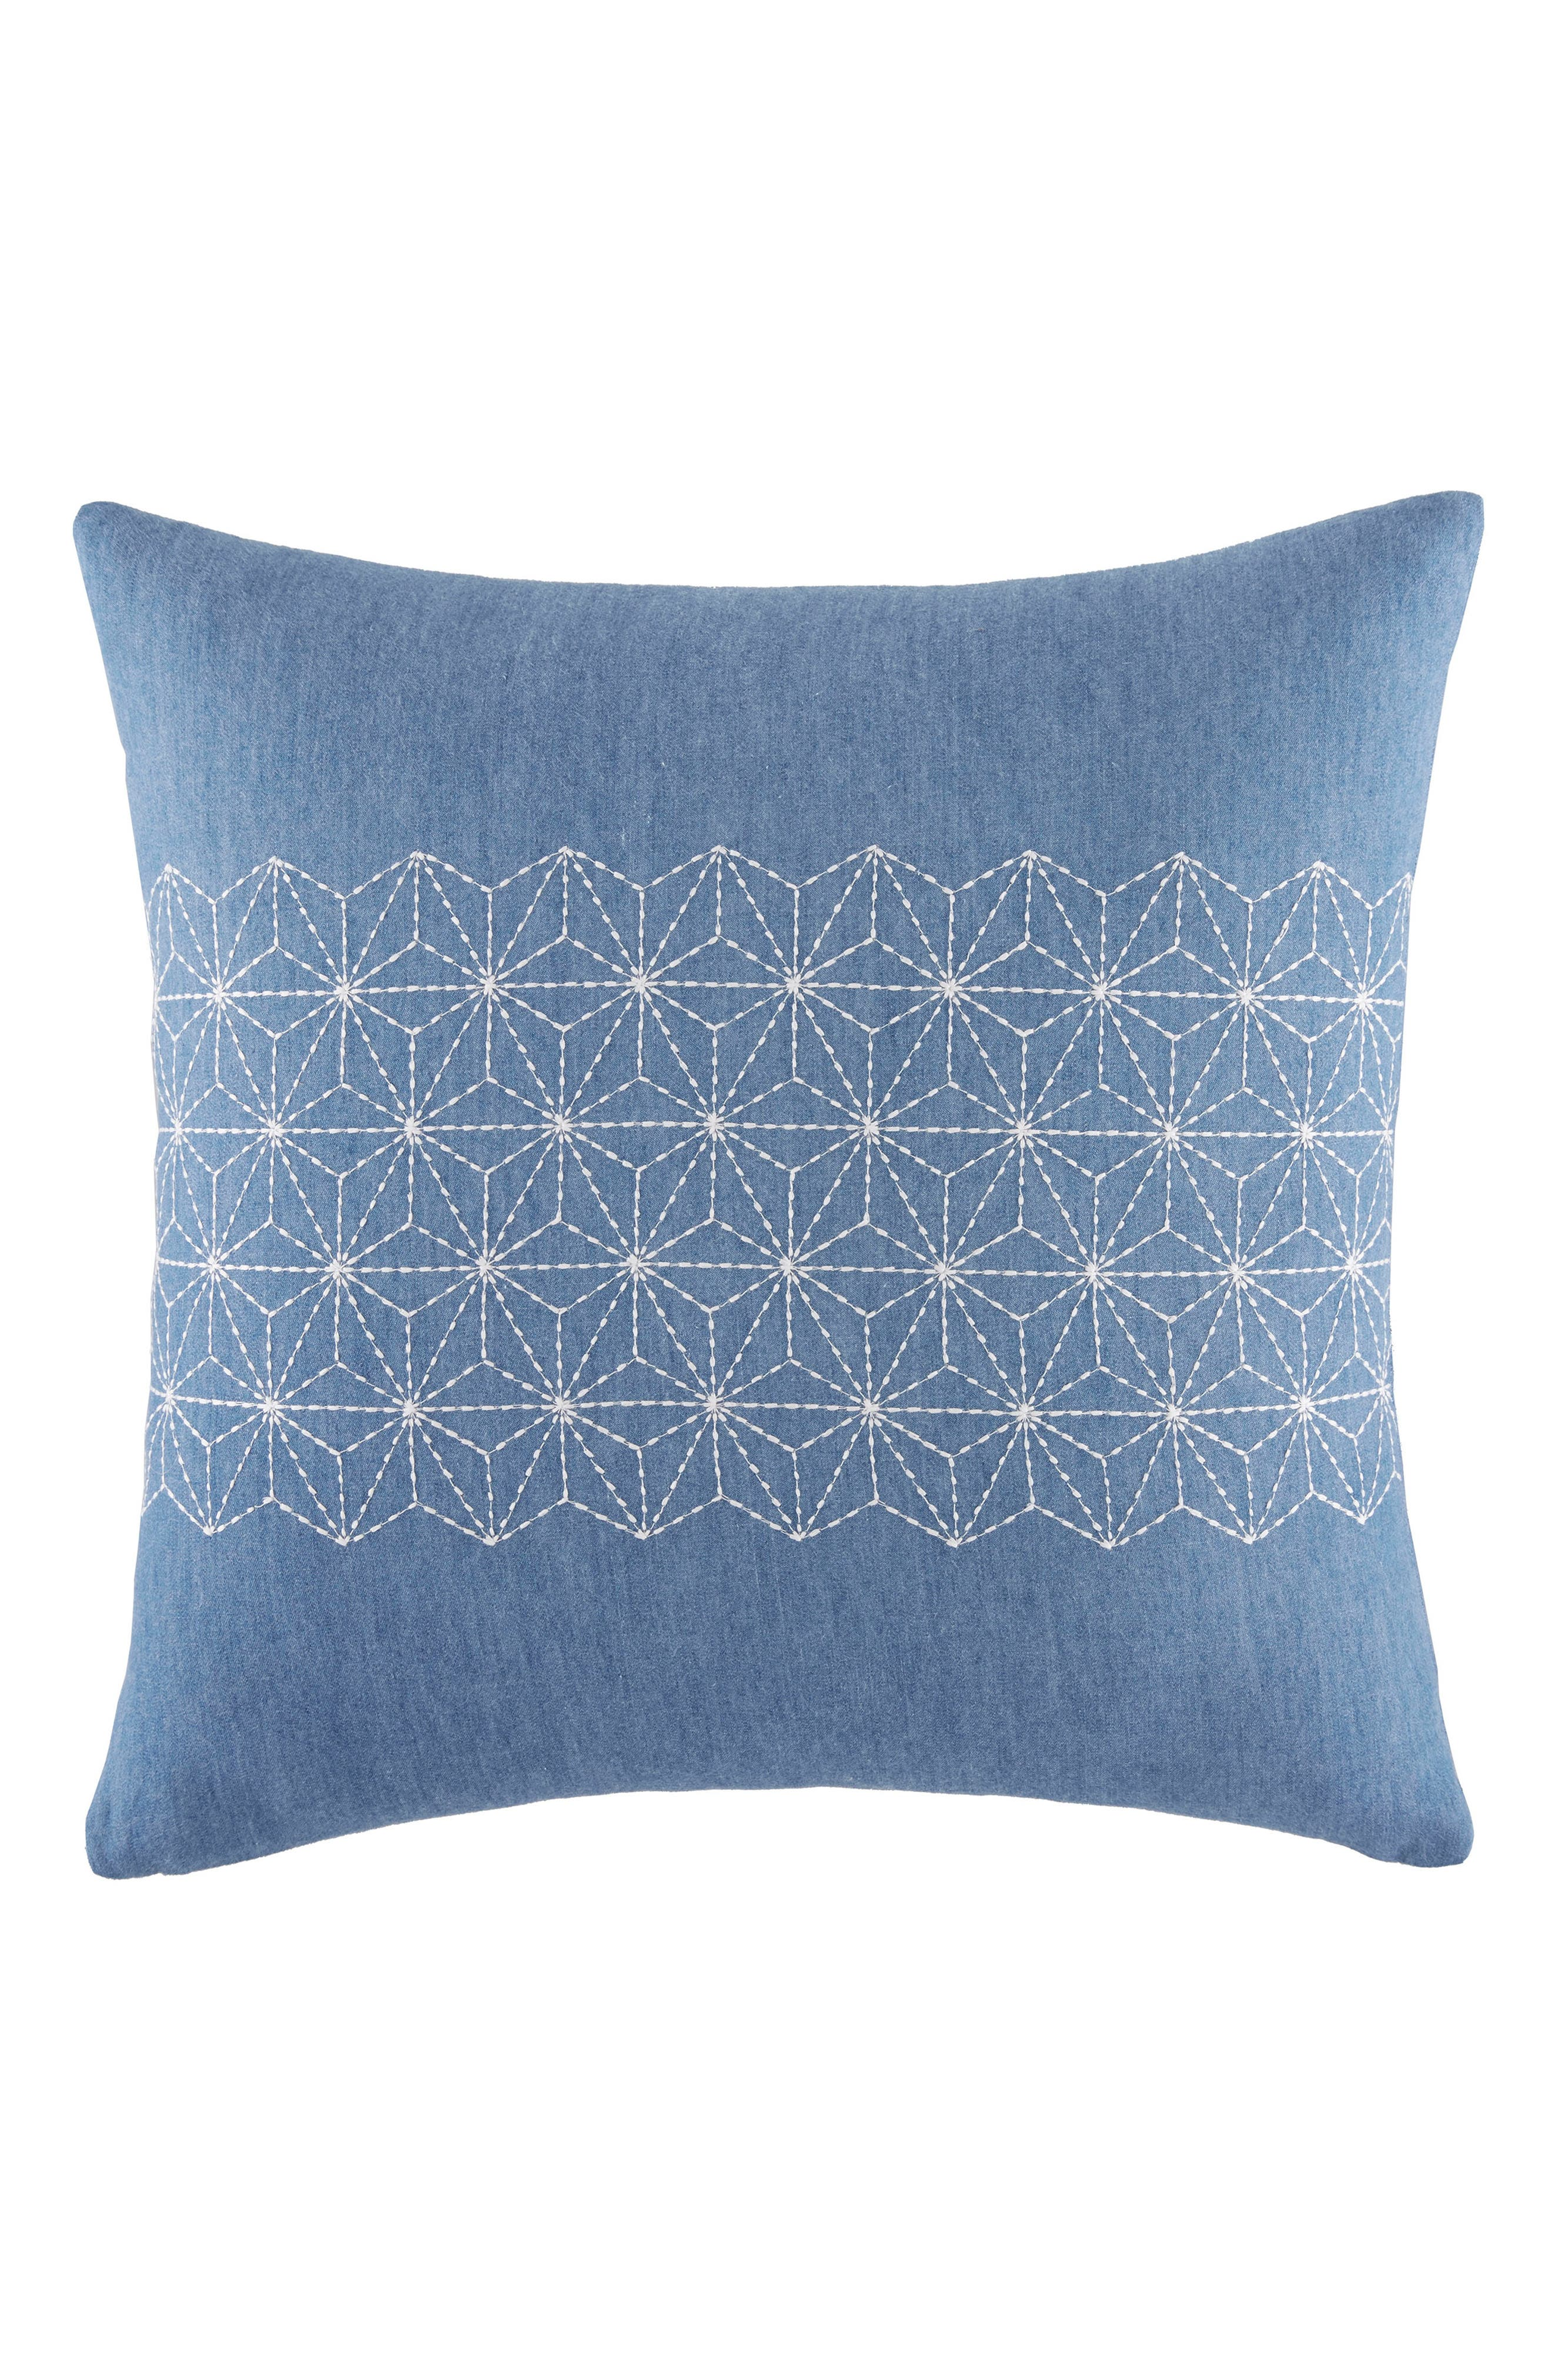 Geo Stitched Accent Pillow,                         Main,                         color, 400